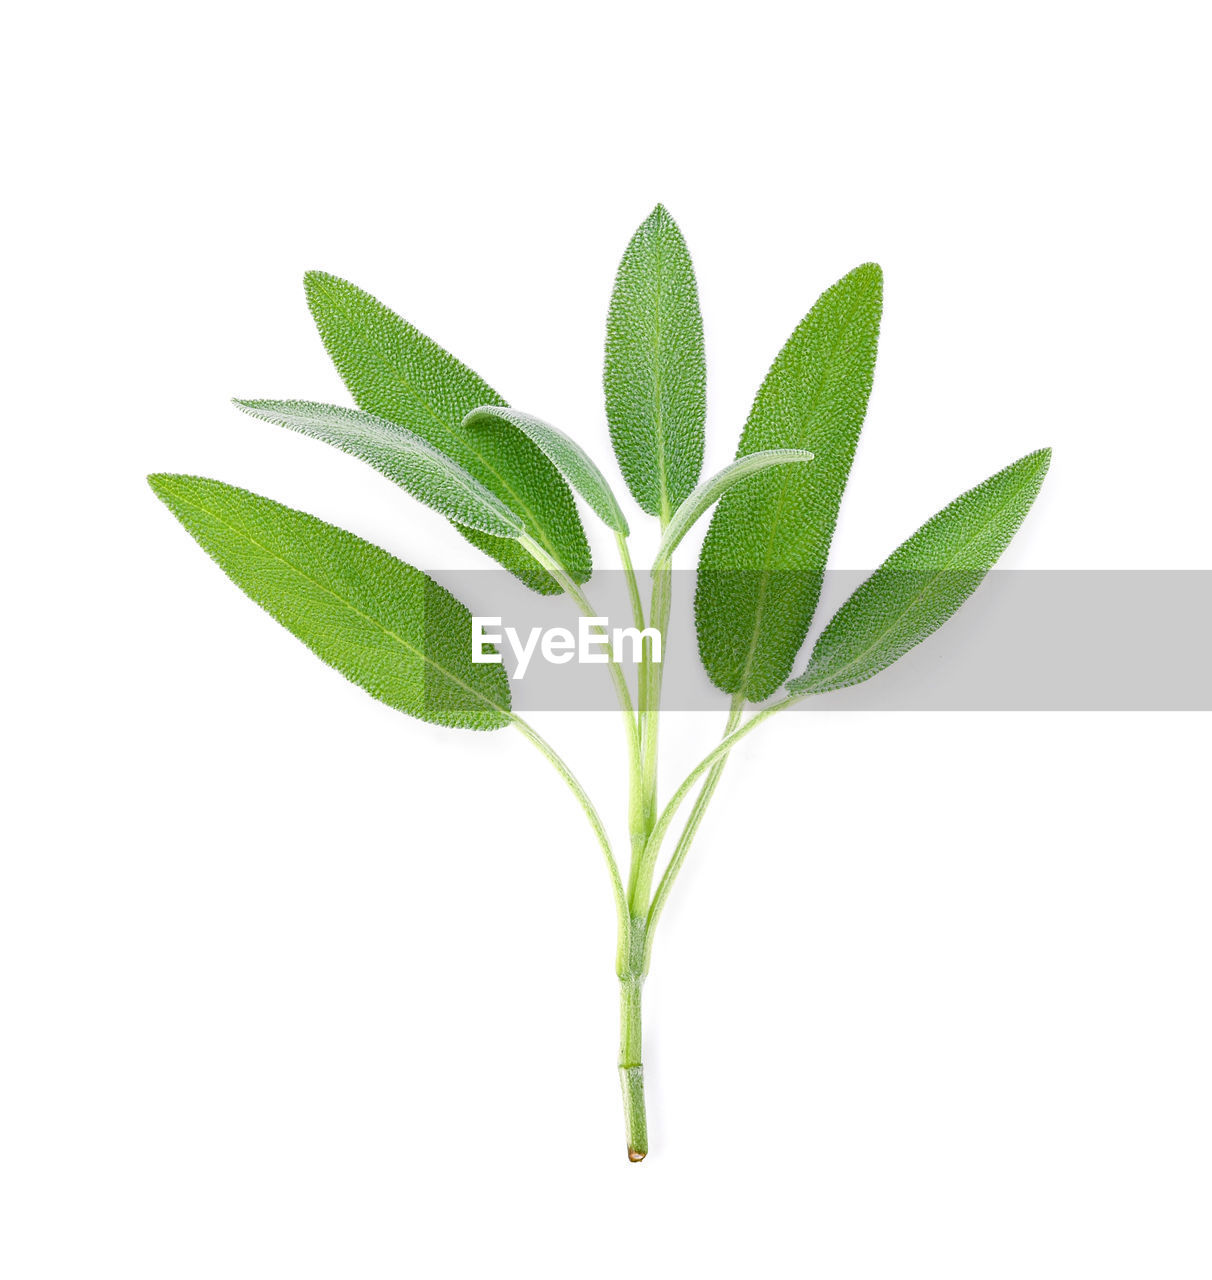 plant part, white background, leaf, green color, studio shot, nature, plant, cut out, close-up, freshness, indoors, no people, medicine, growth, beauty in nature, beginnings, vulnerability, herb, food, food and drink, leaves